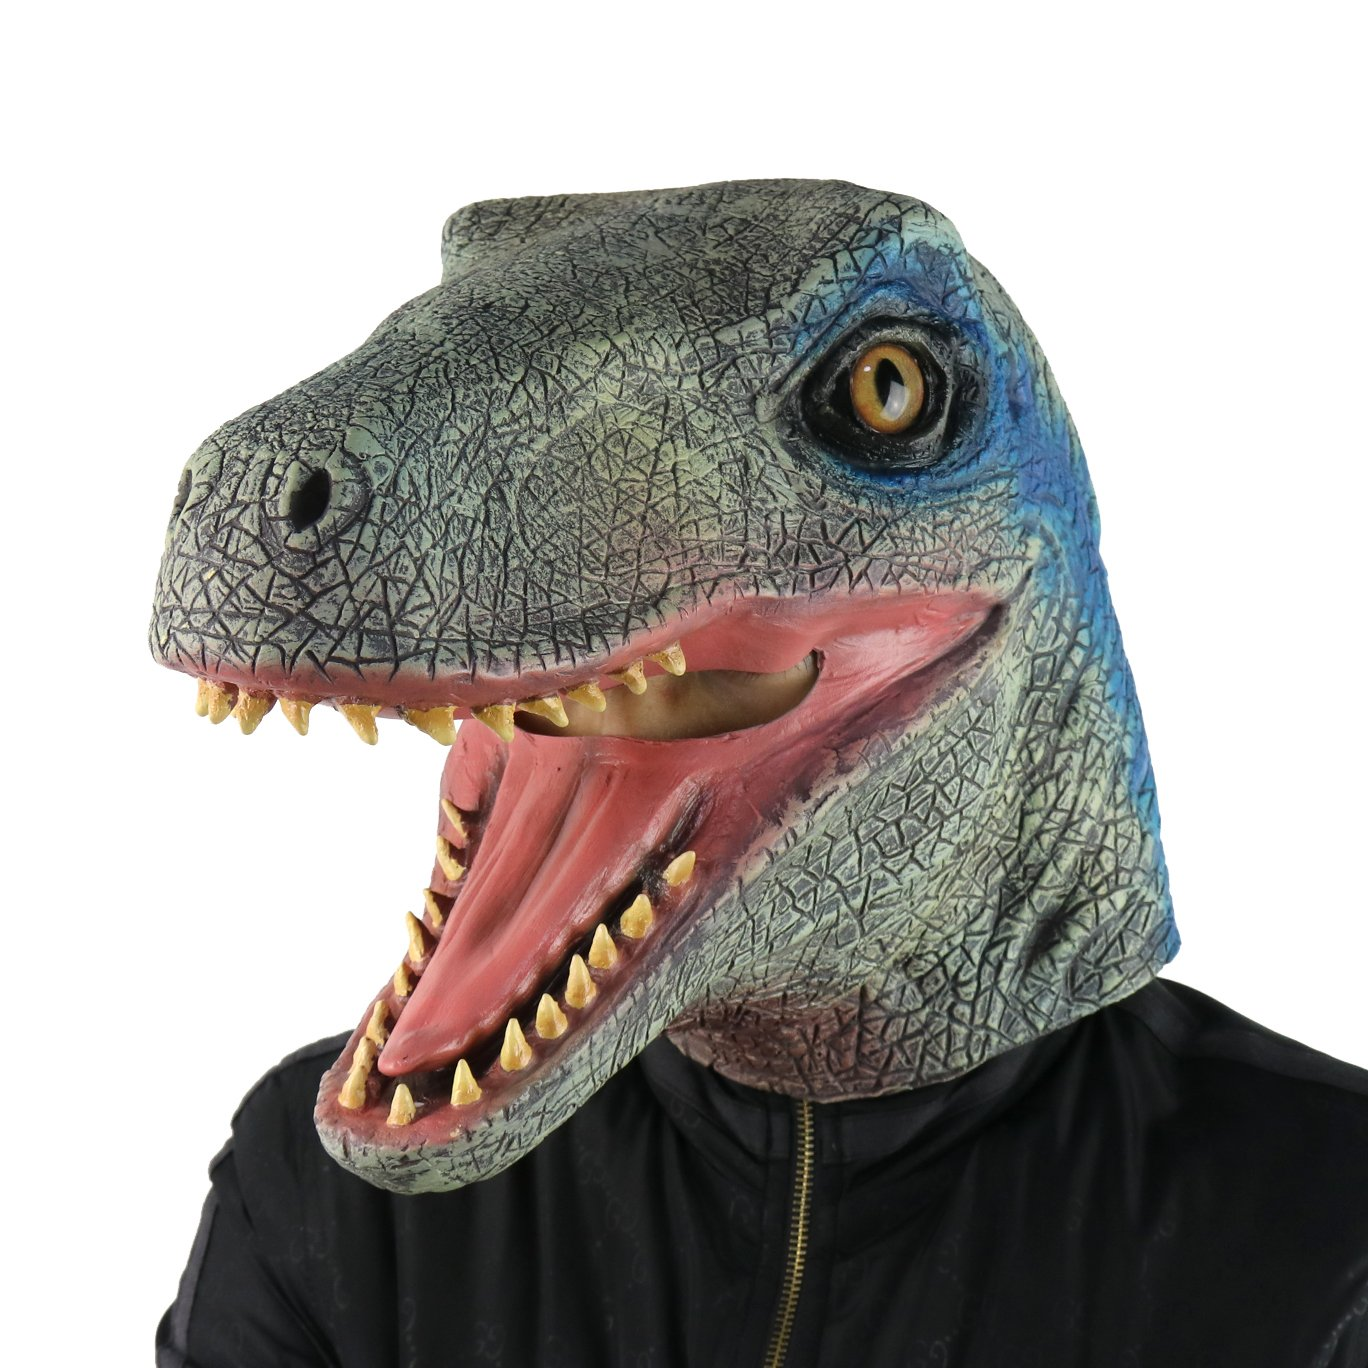 FantasyParty Halloween Mask Costume Party Latex Jurassic Dinosaur Head Mask Velociraptor